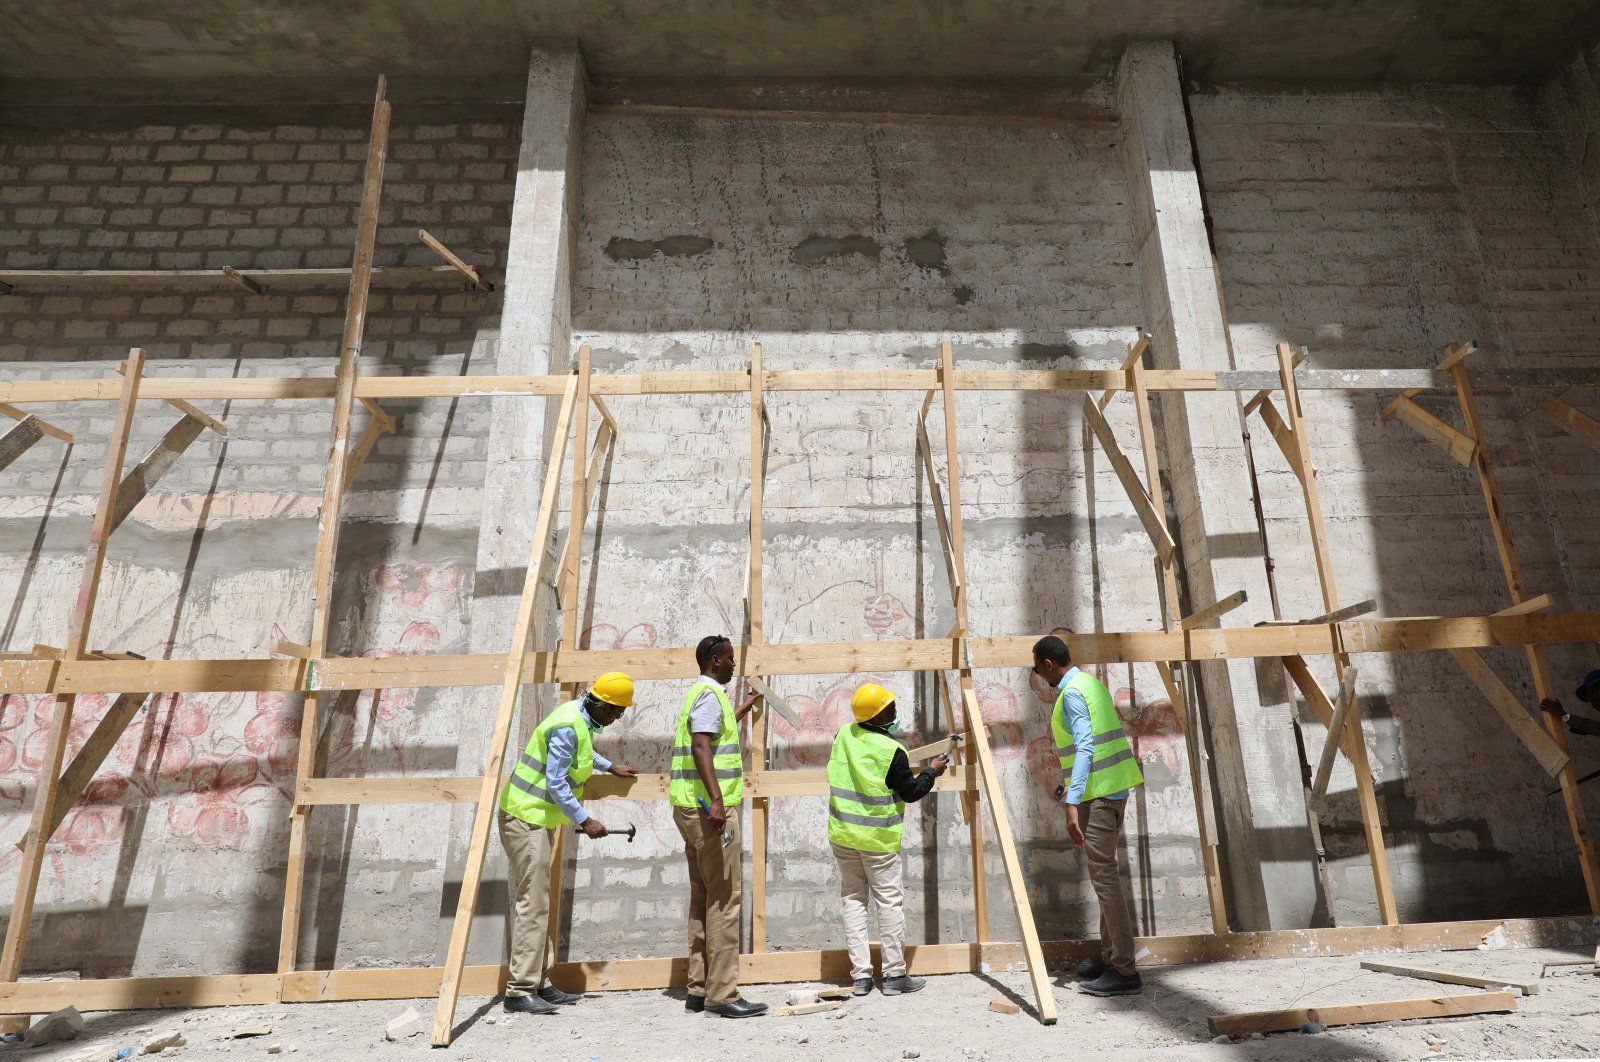 Construction workers take part in the renovation project of Somalia's National Theatre in Mogadishu, Somalia, Feb. 3, 2019.  (Reuters File Photo)